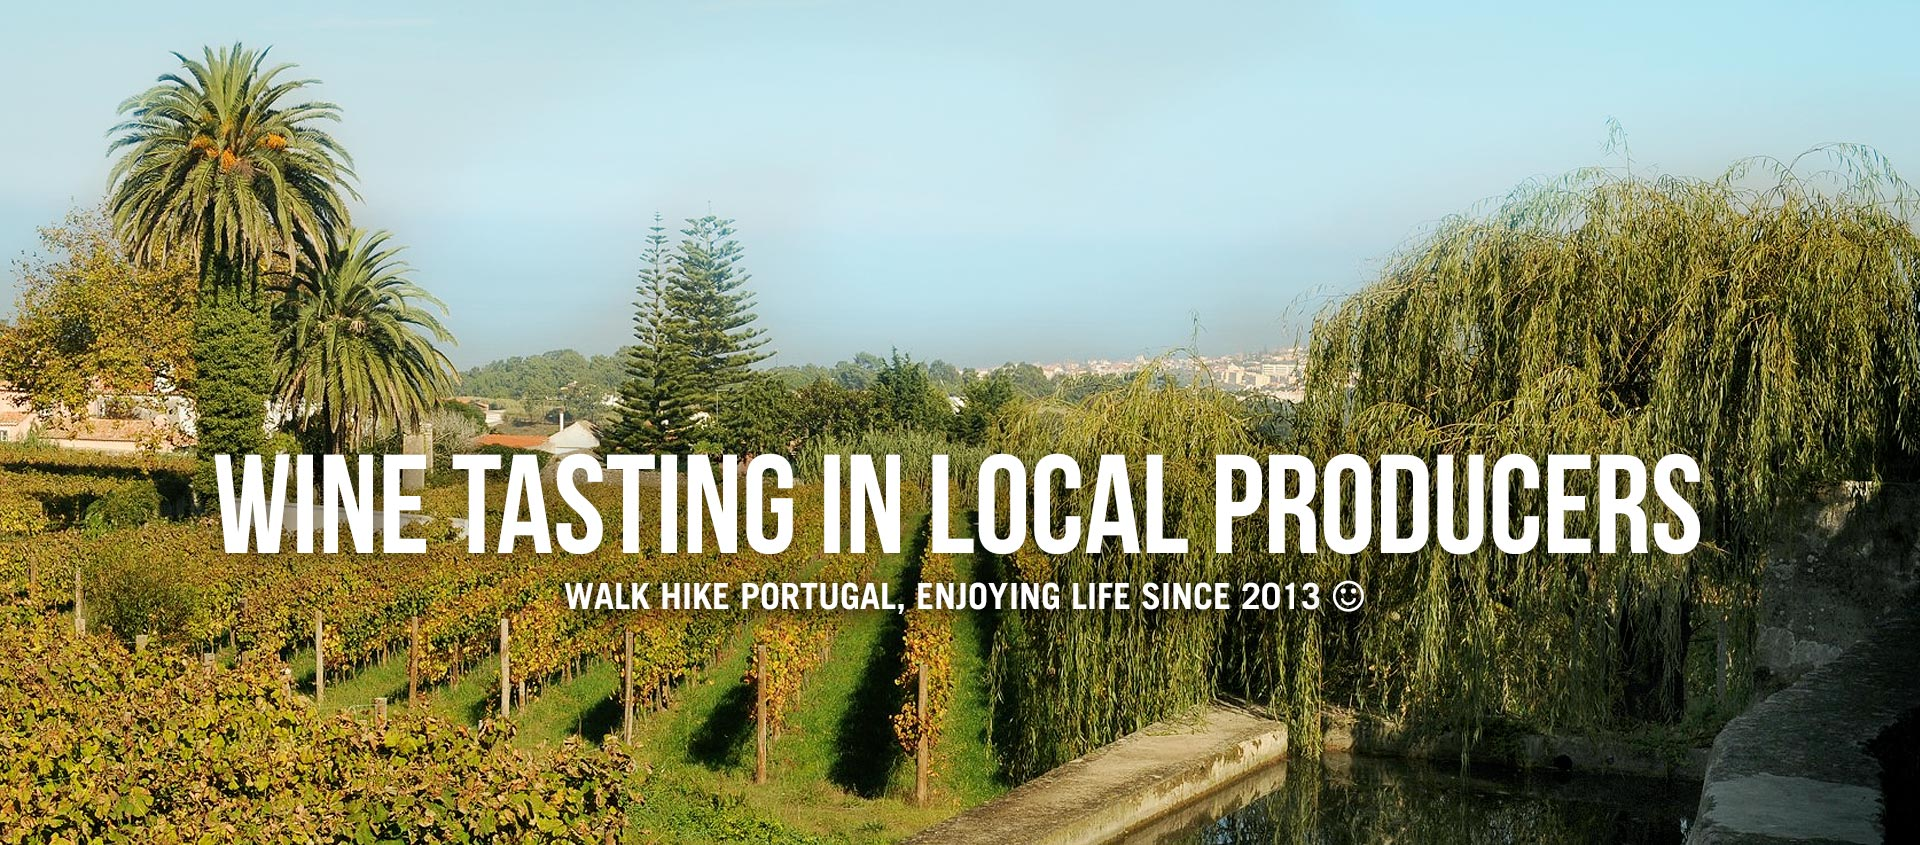 WINE TASTING IN LOCAL PRODUCERS